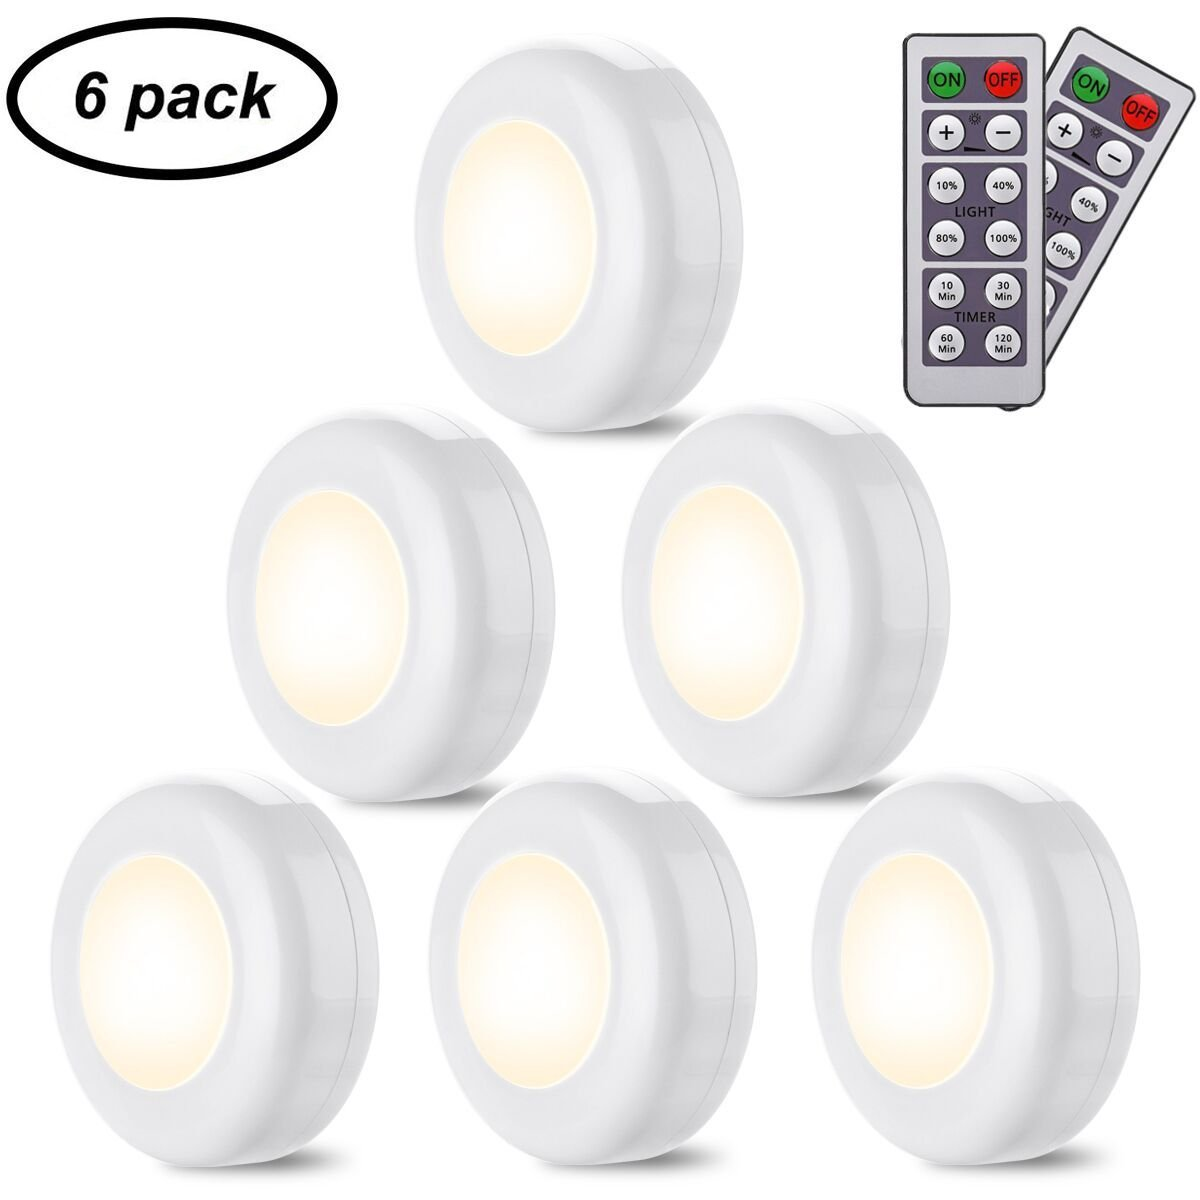 Closet Lights Elfeland Wireless LED Puck Lights with Remote Control LED Under Cabinet Lighting Dimmable Battery Powered Under Counter Lights for Kitchen Hallway Bedroom Stair (Warm White,6 Pack)